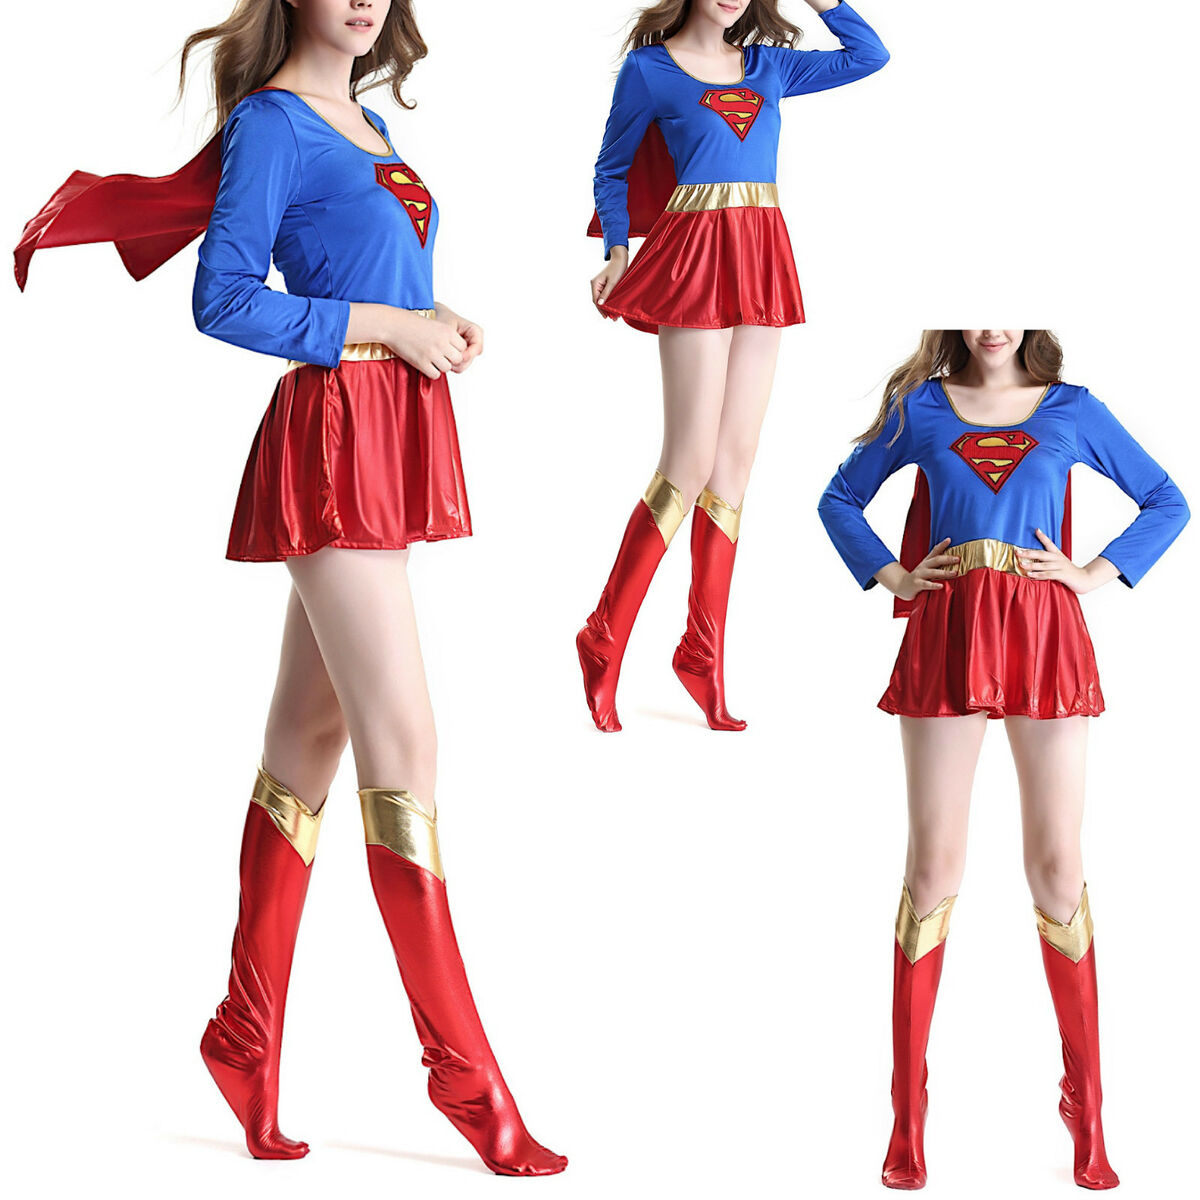 Super girl vestito carnevale donna supergirl woman cosplay costume 